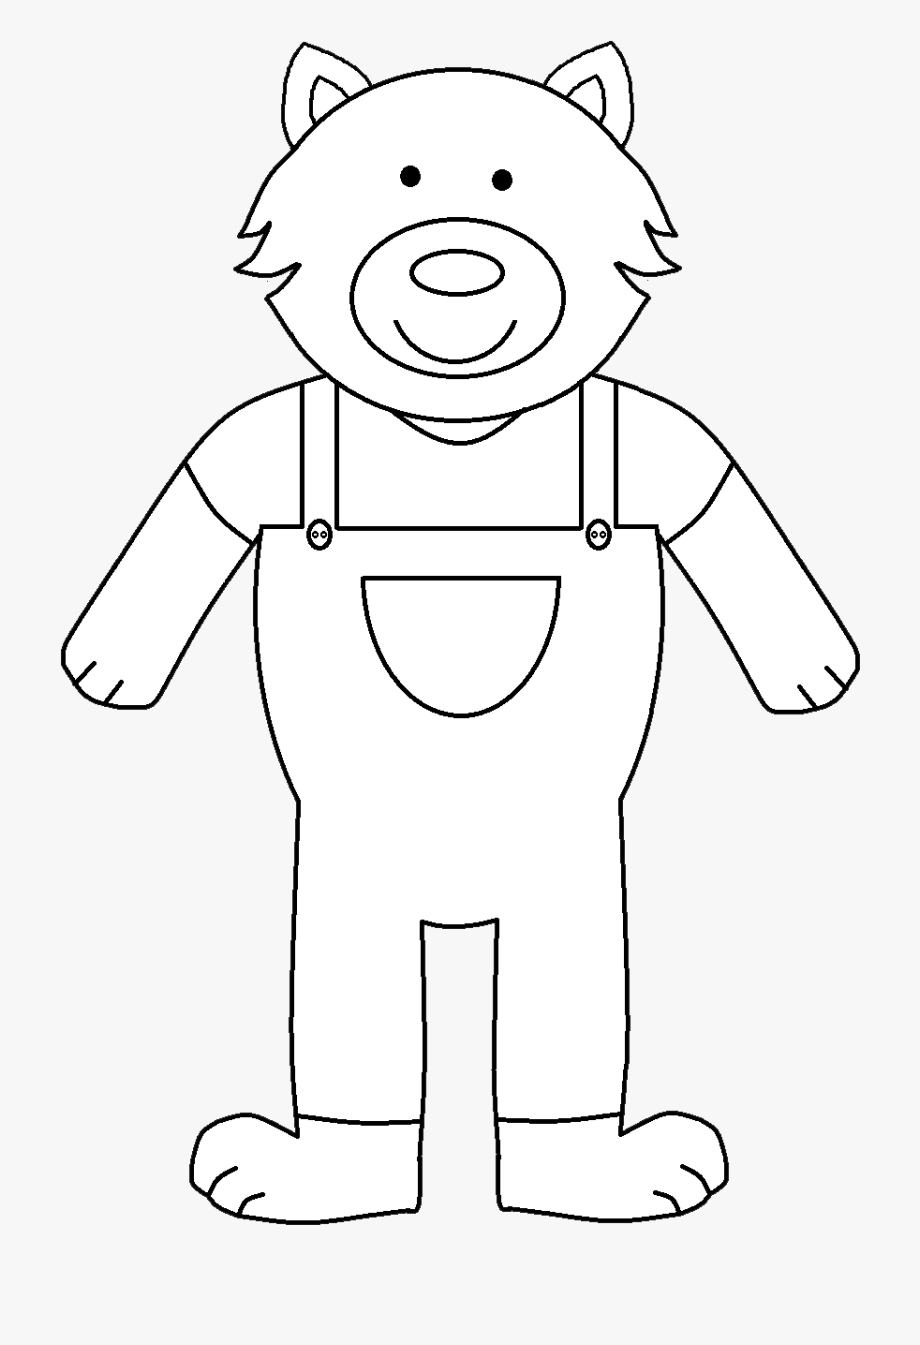 Graphic Royalty Free 3 Pigs Clipart.